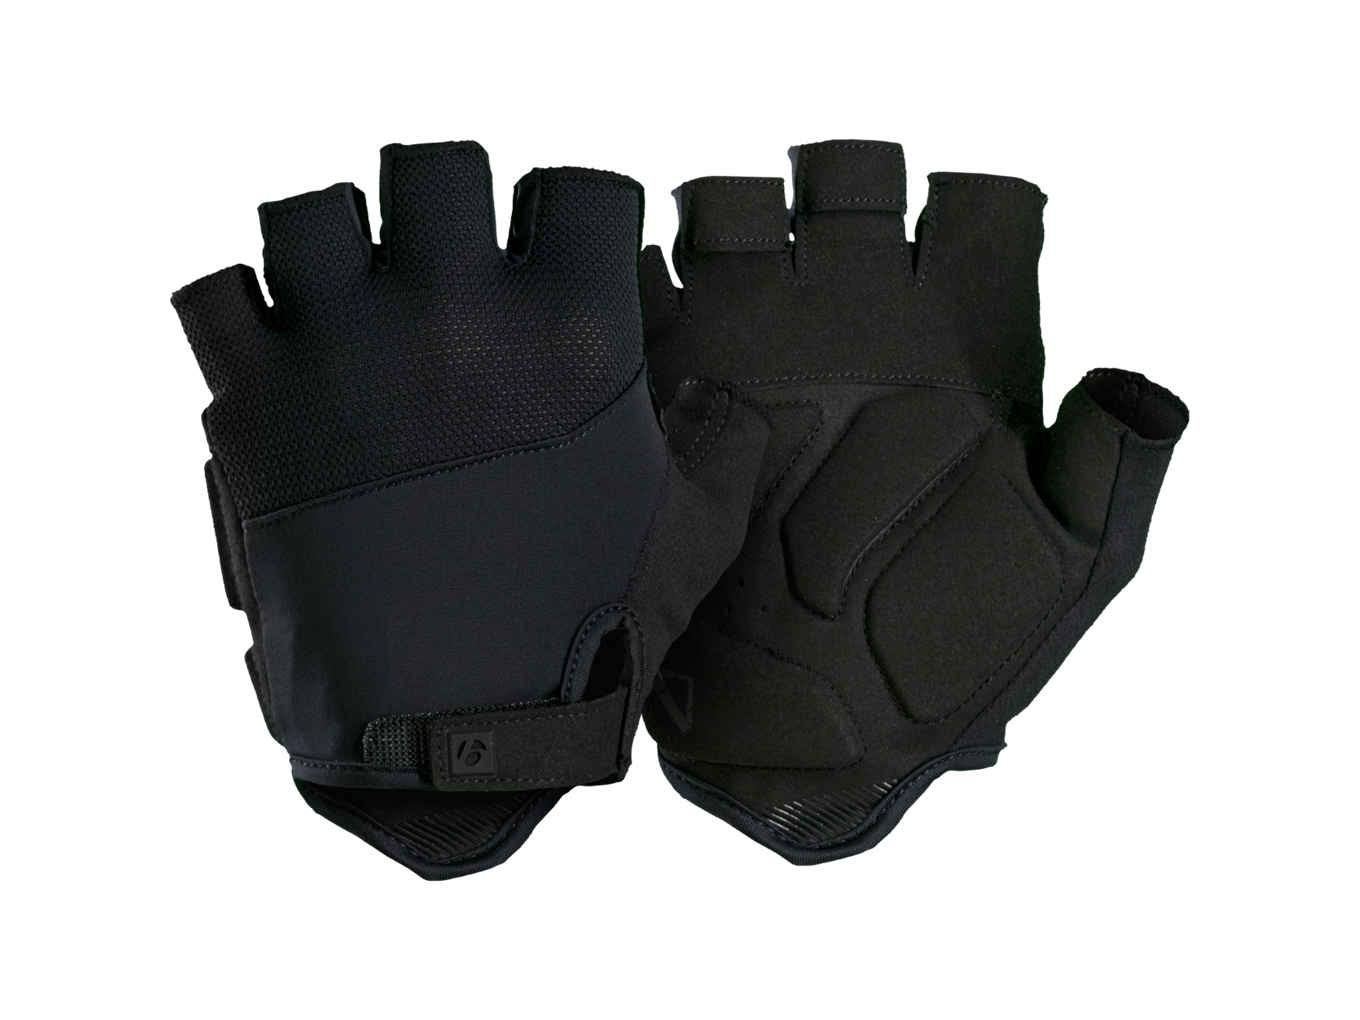 Bontrager Solstice Cycling Glove - Black - X-Large